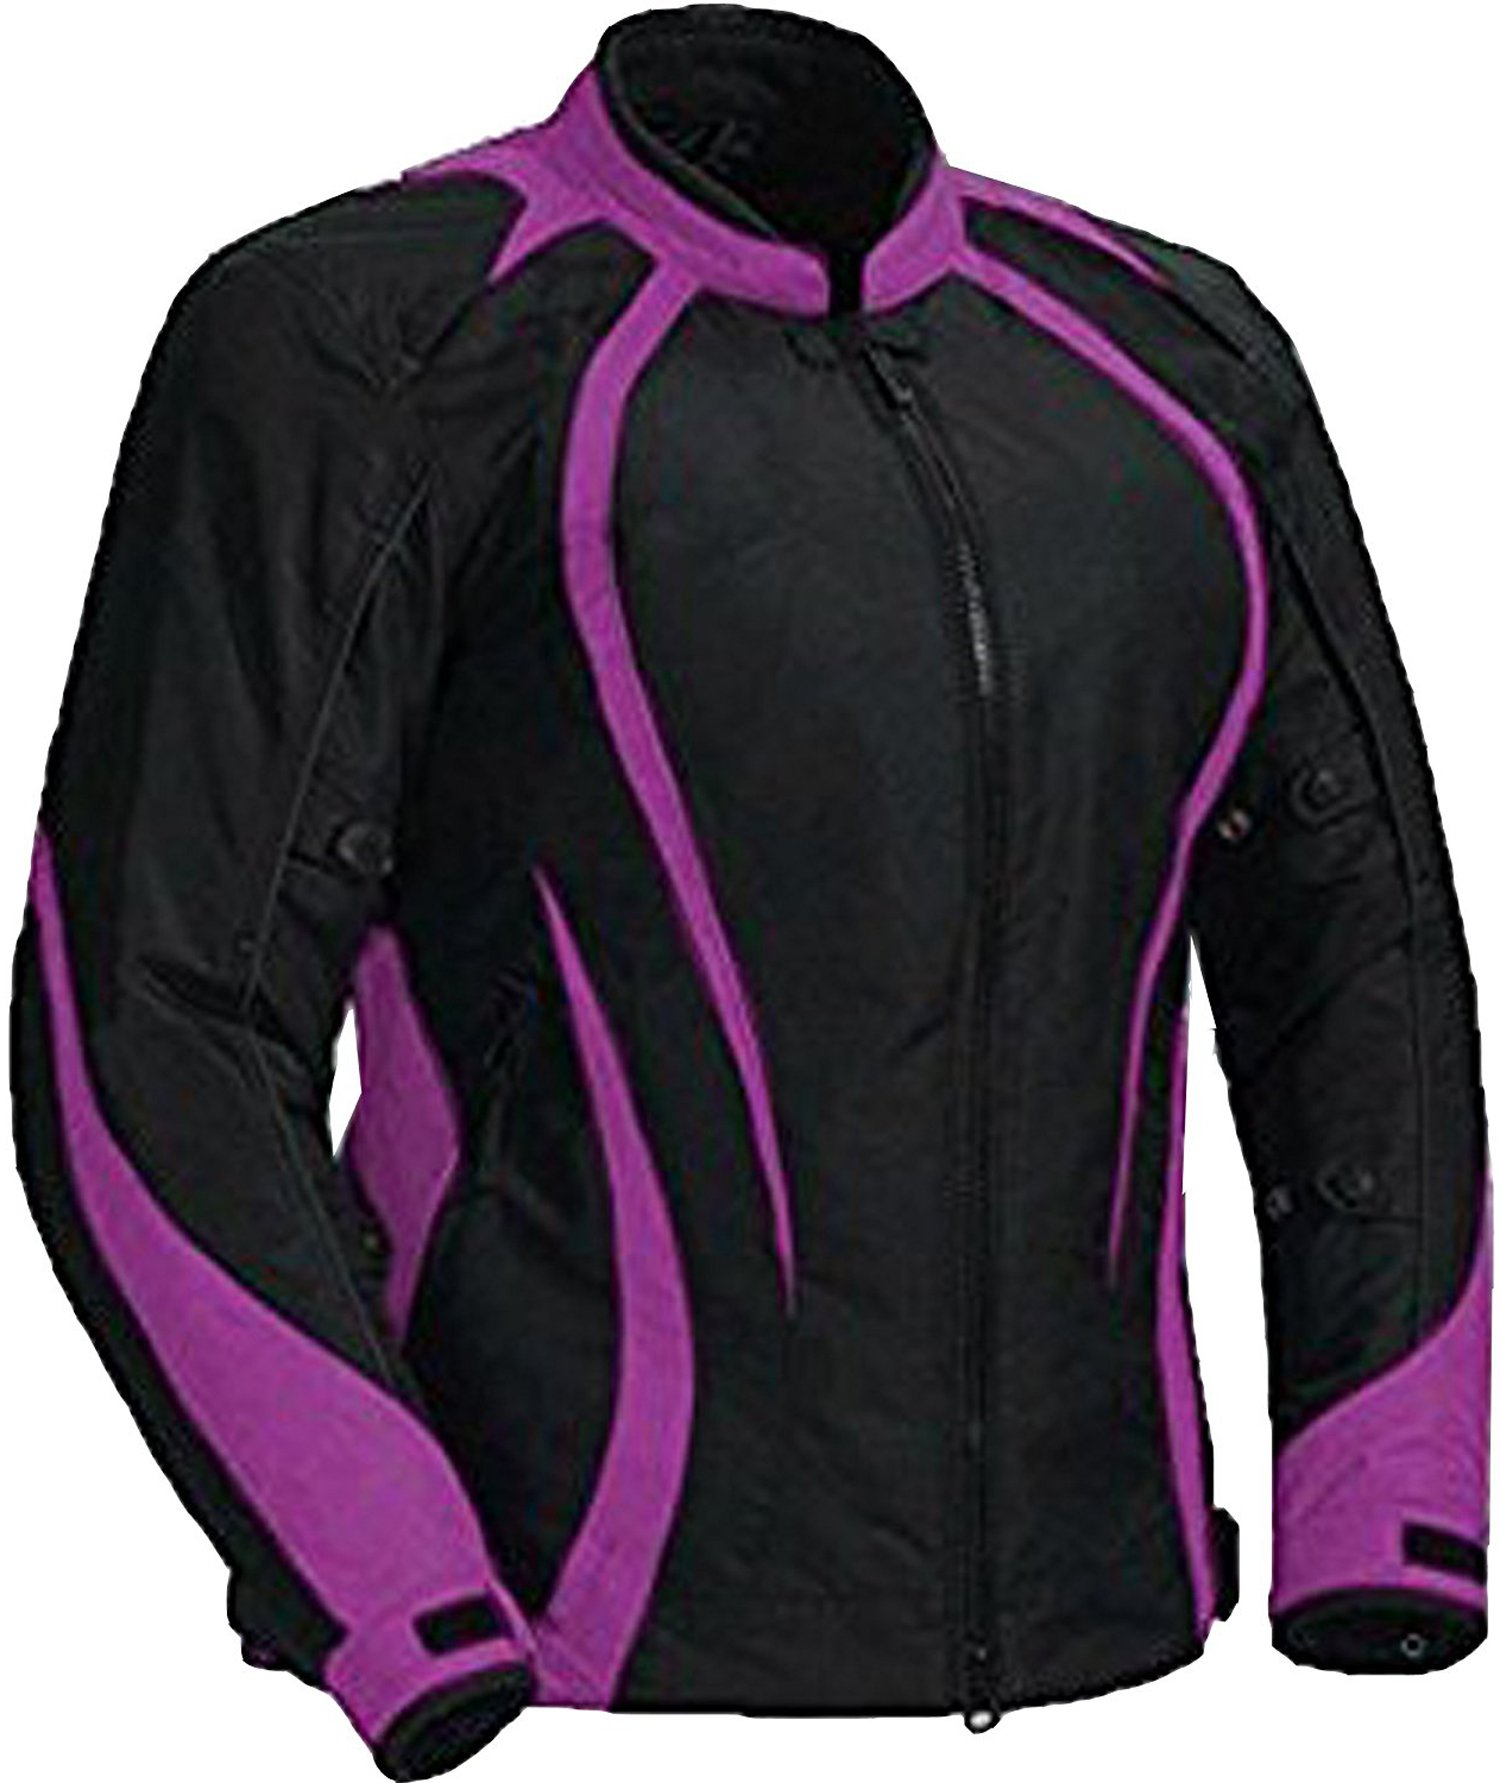 Juicy Trendz Motorcycle Motorbike Biker Cordura Waterproof Textile Jacket Purple Large